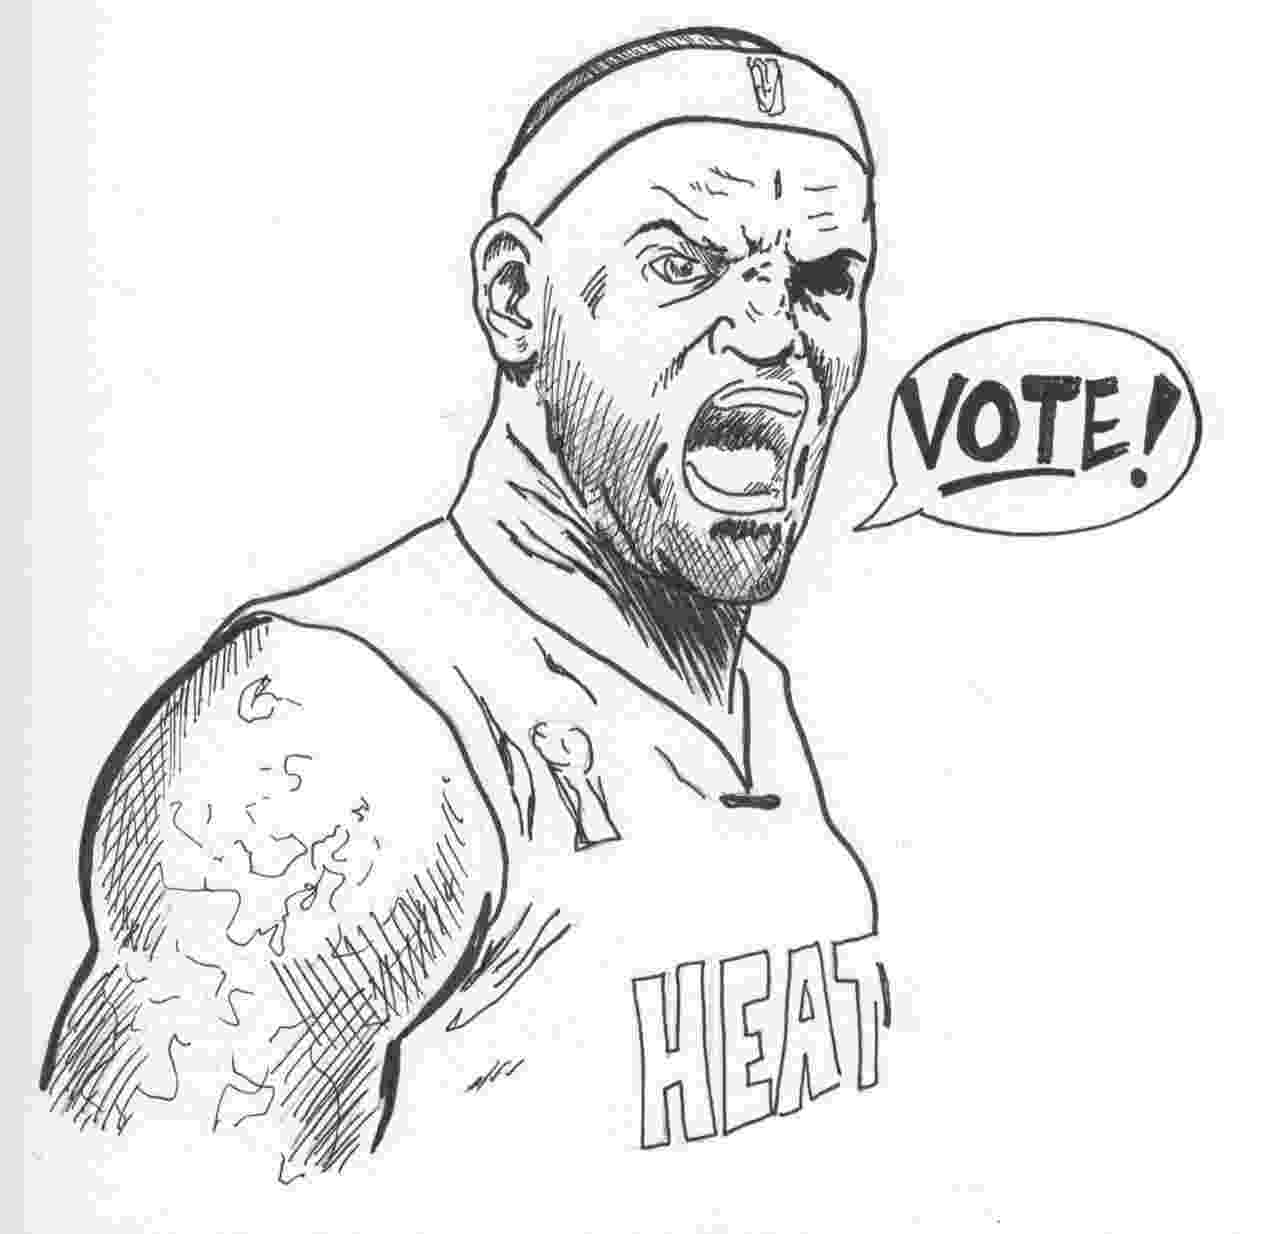 lebron james coloring pages lebron james dunk drawing at getdrawingscom free for james pages coloring lebron